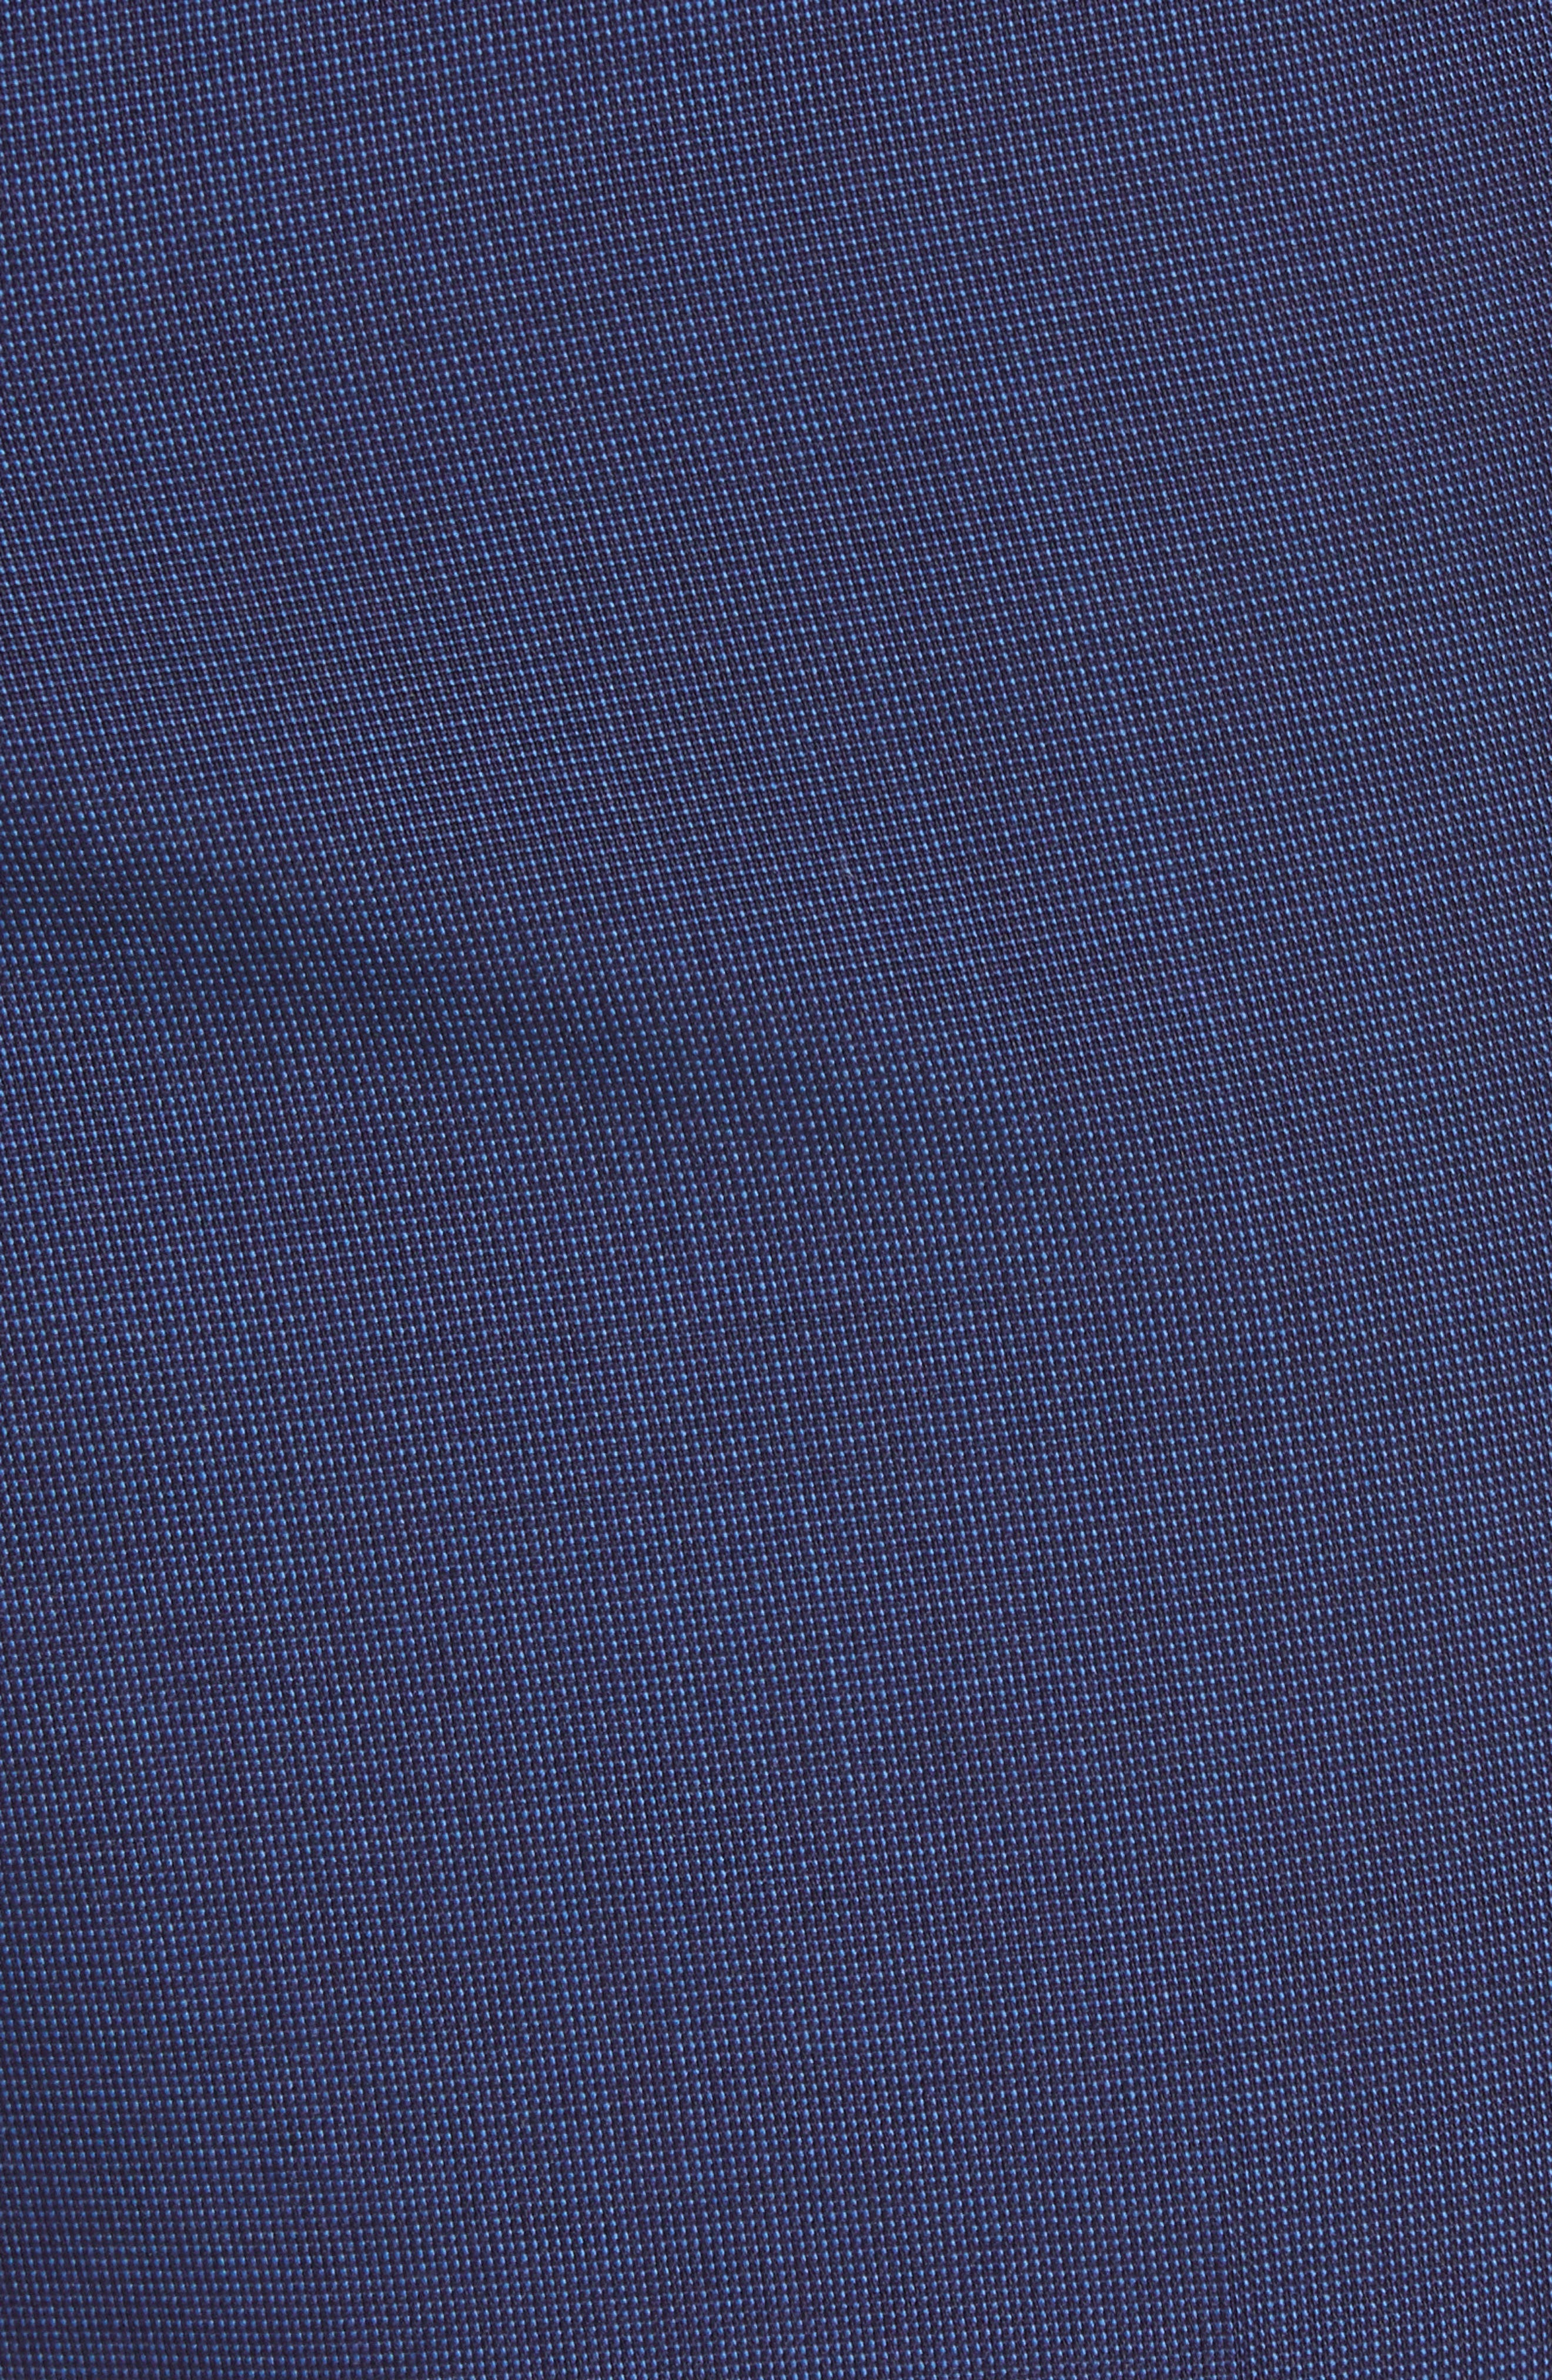 TED BAKER LONDON, Jefferson Flat Front Solid Wool Trousers, Alternate thumbnail 3, color, BLUE